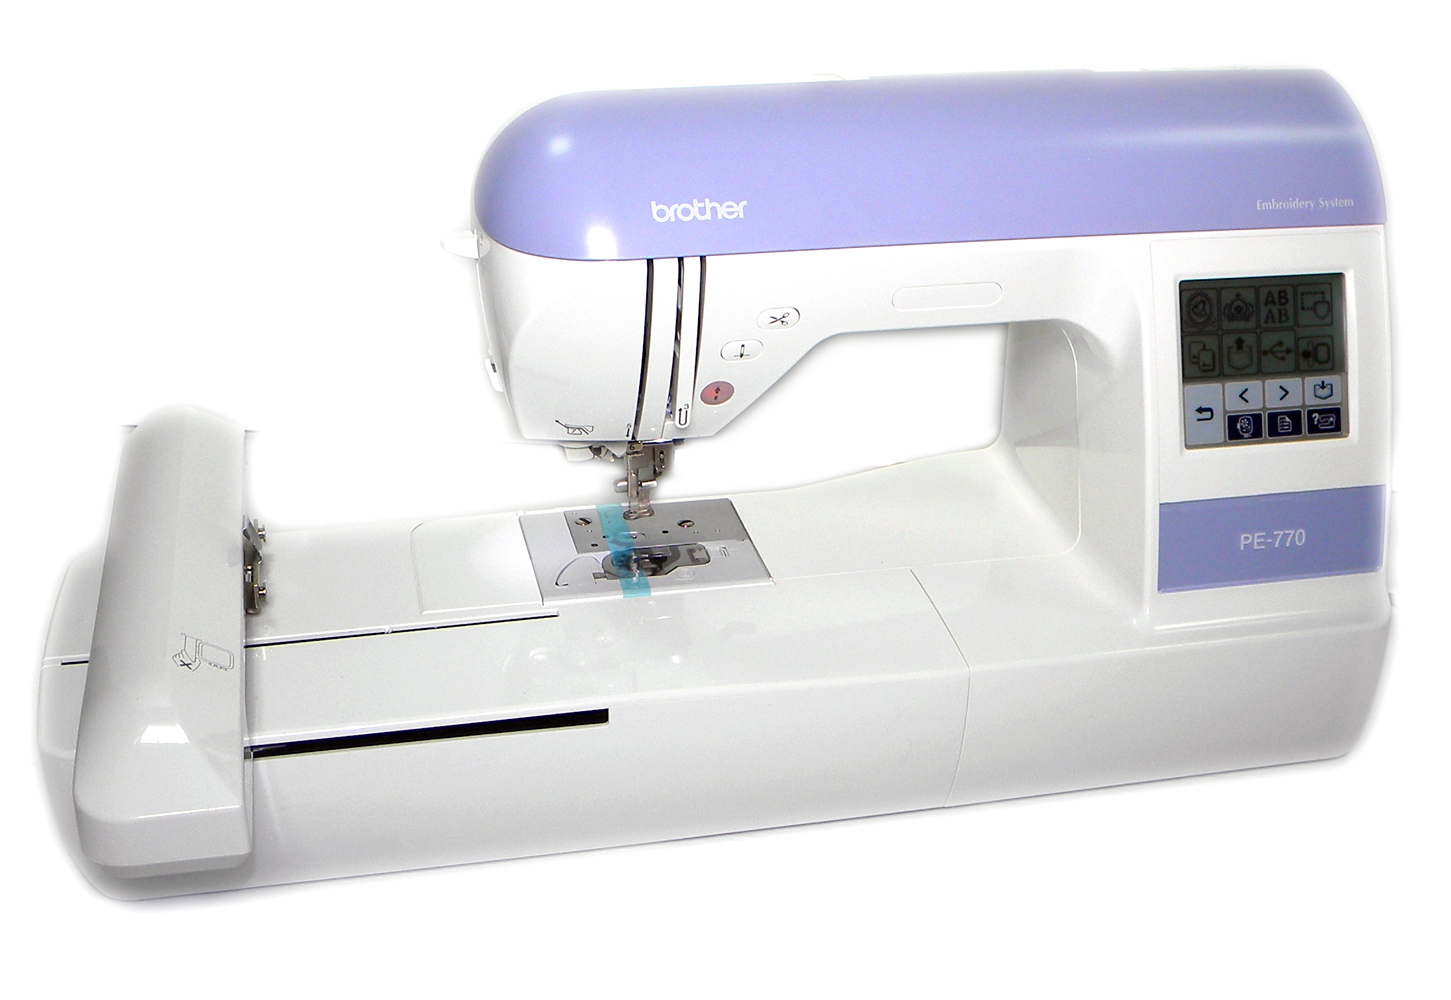 BROTHER PE770 EMBROIDERY MACHINE USB COMPATIBILITY PE770